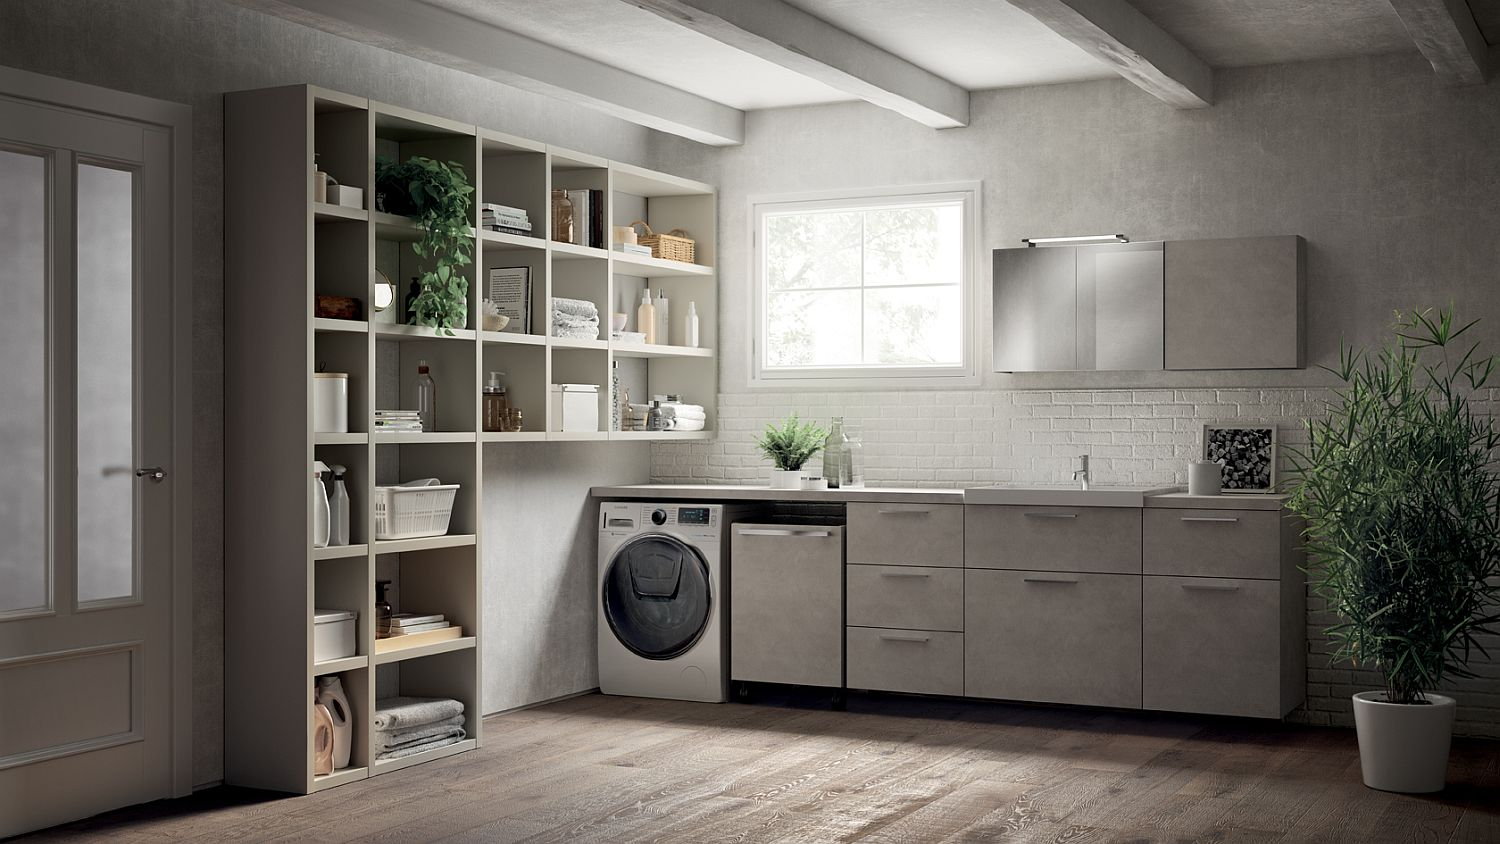 Fluida wall system combined with refined bathroom setting and smart laundry space